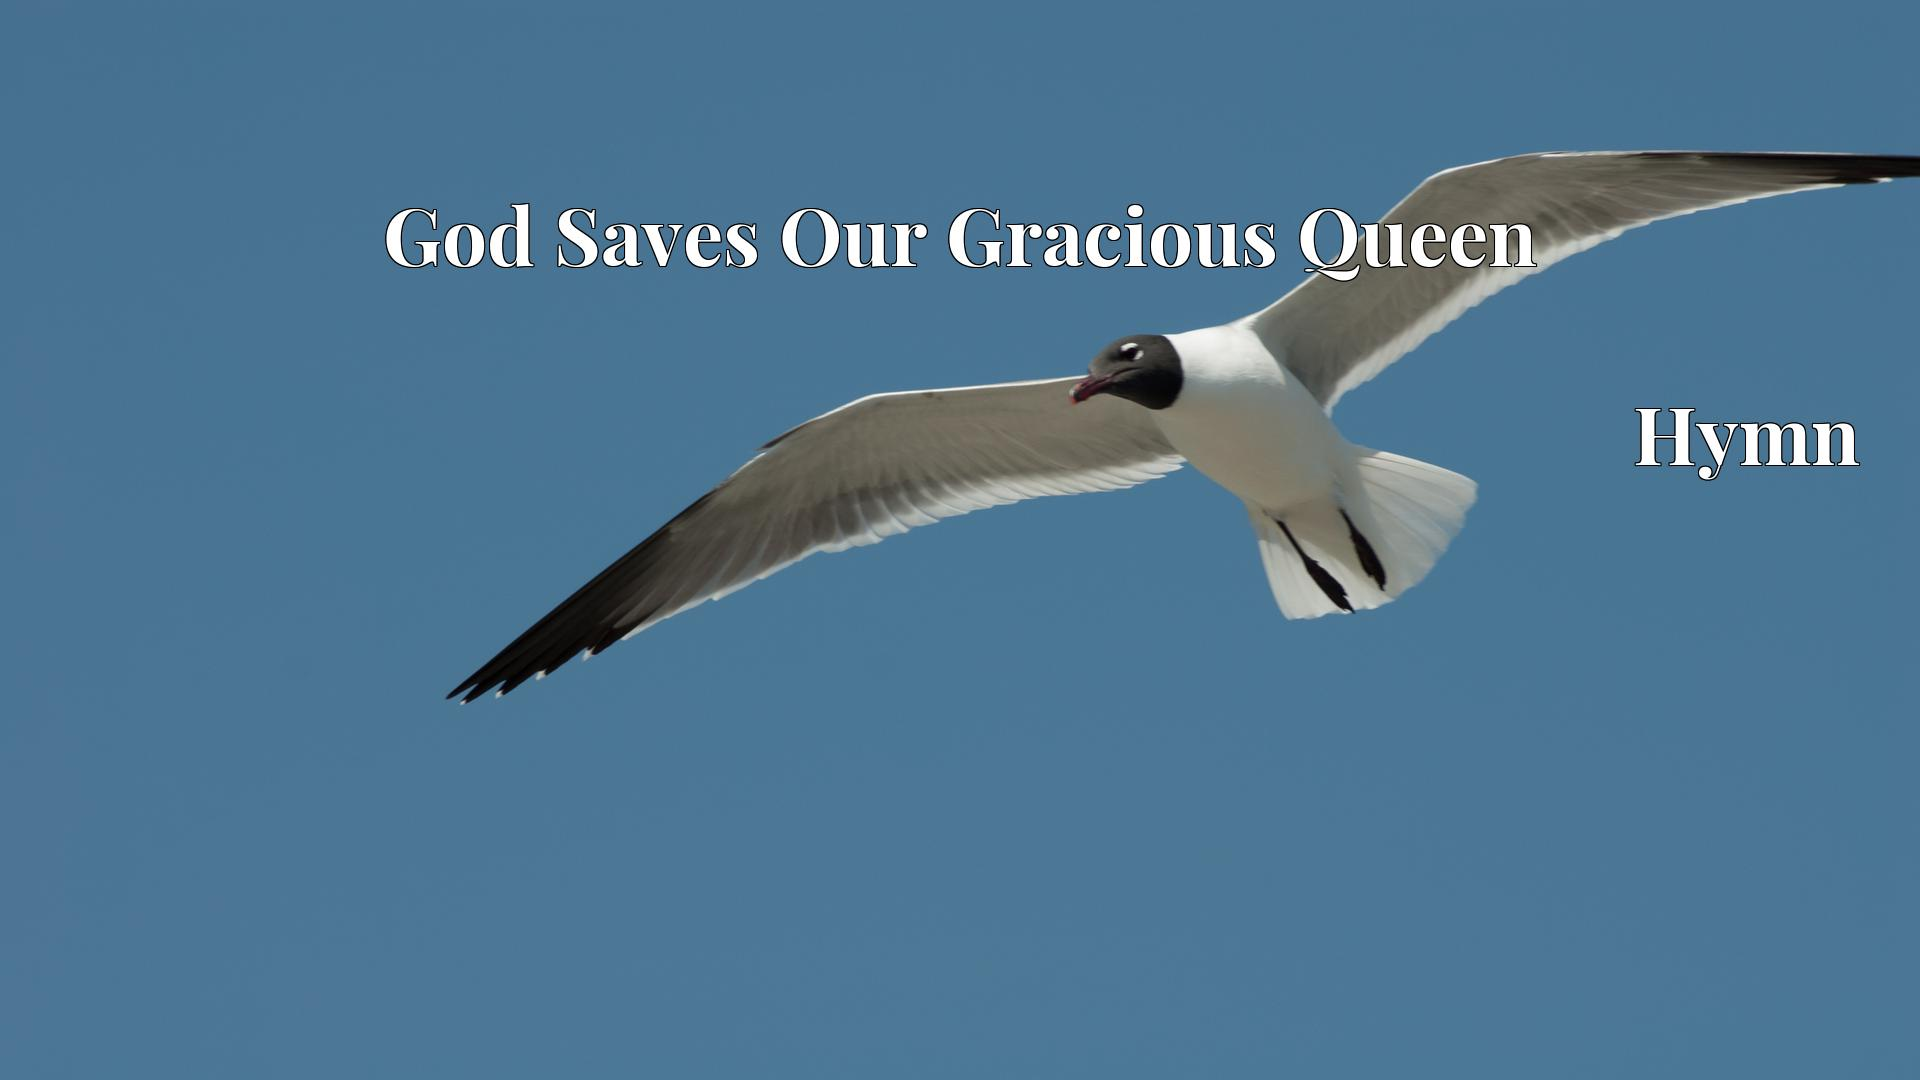 God Saves Our Gracious Queen - Hymn